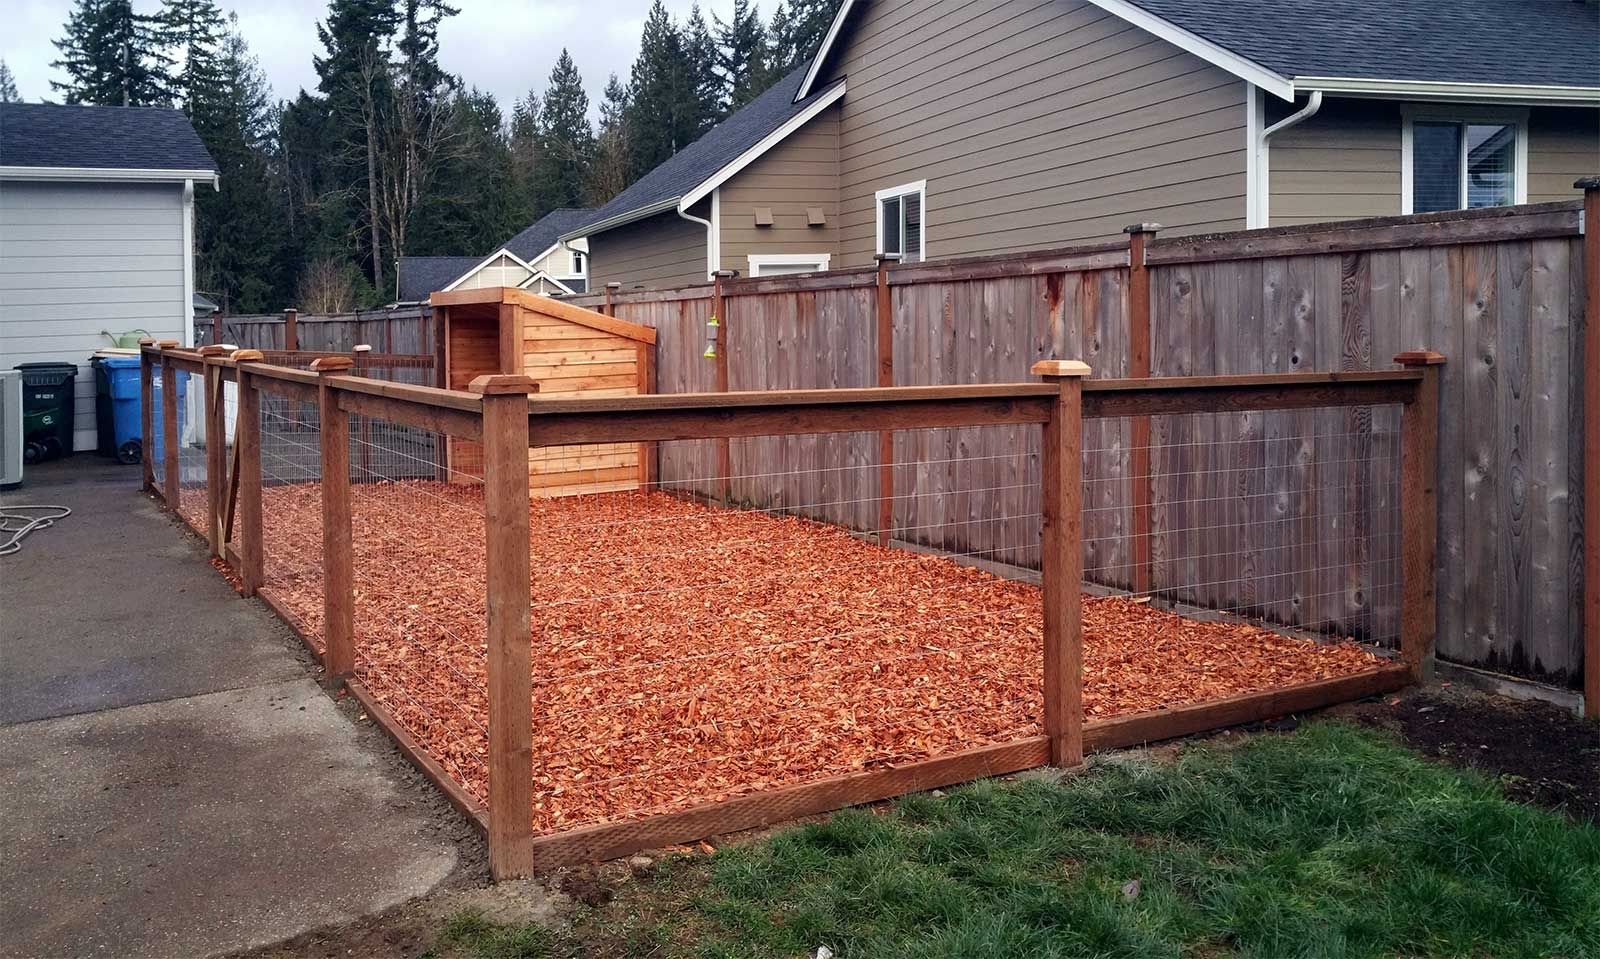 After the finished dog kennel includes a steel fence with